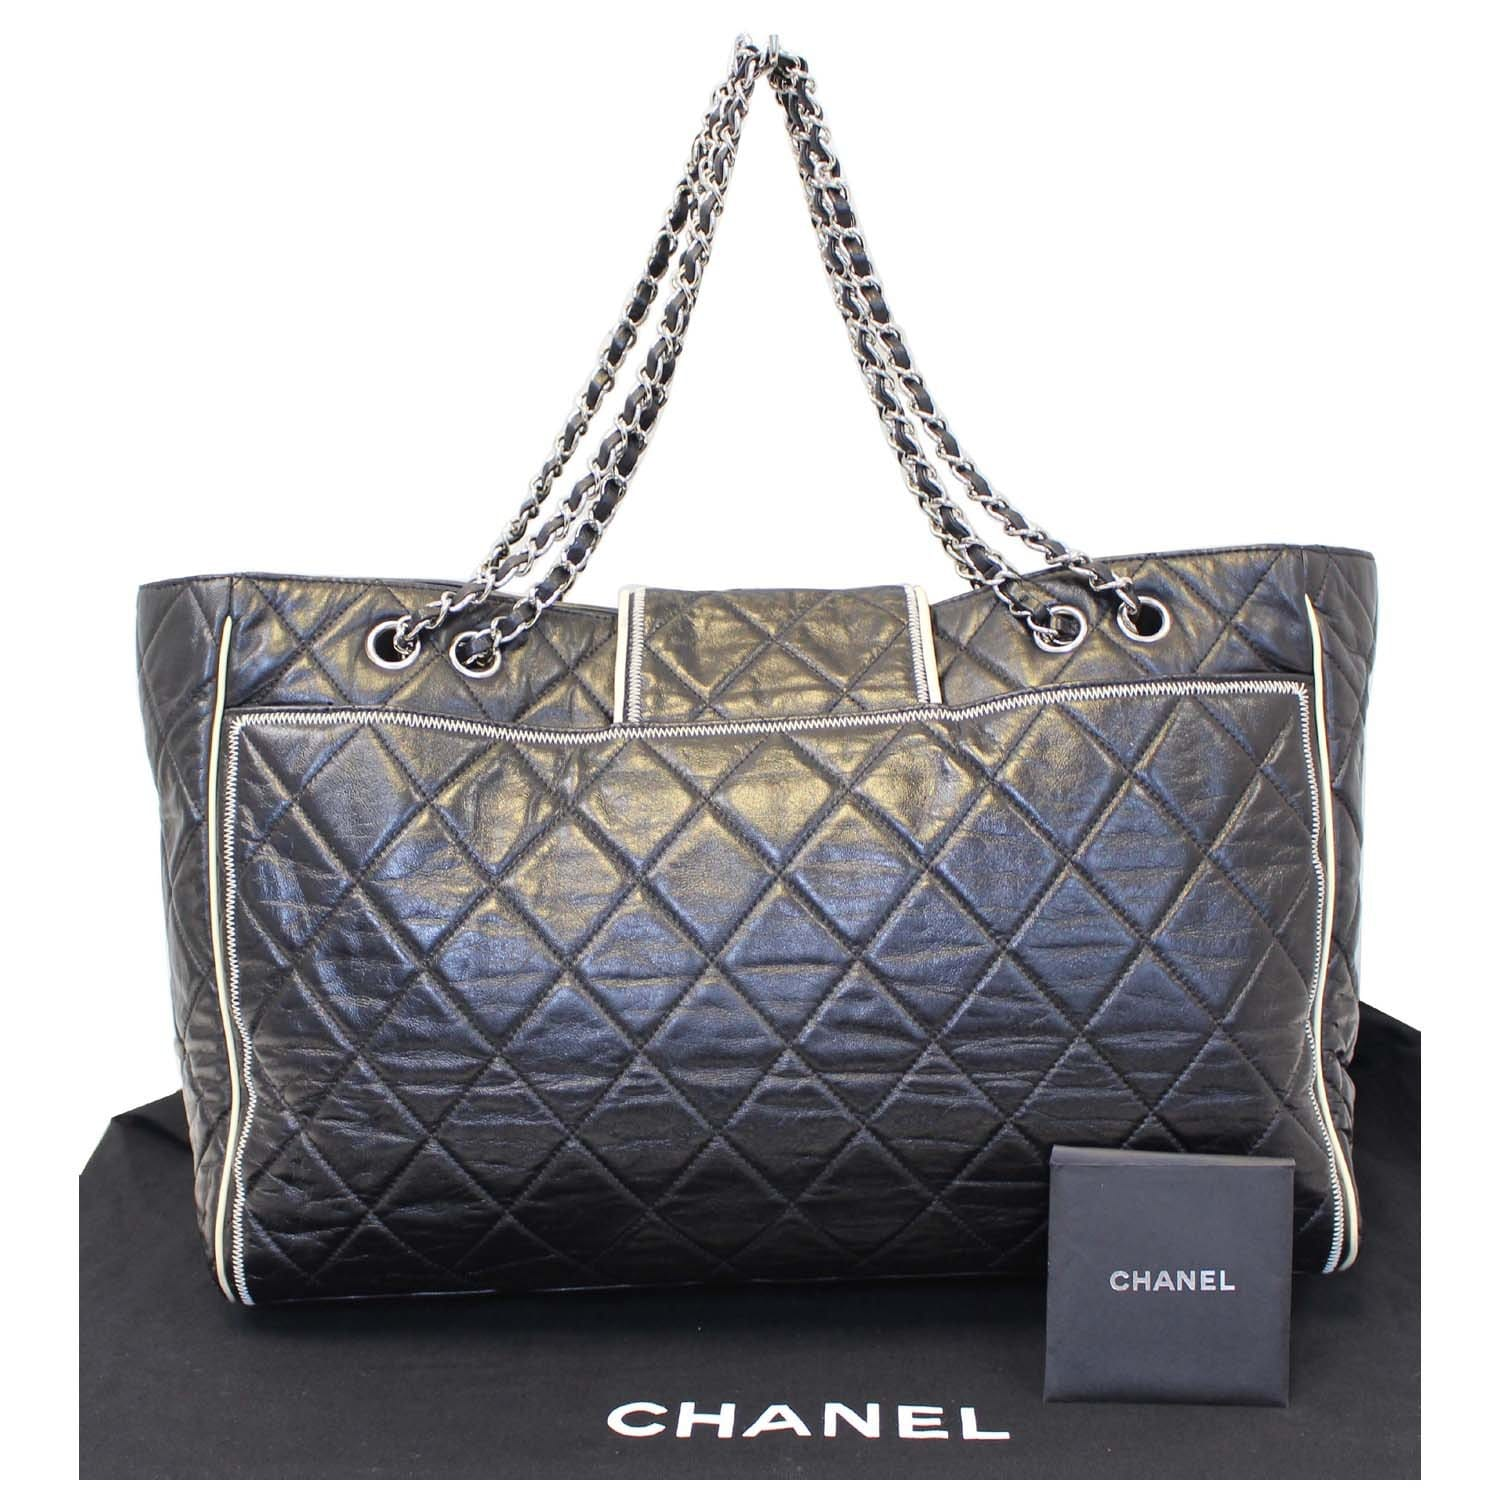 2e0f17347625 CHANEL East West Large Lambskin Quilted Leather Tote Shoulder Bag Black-US